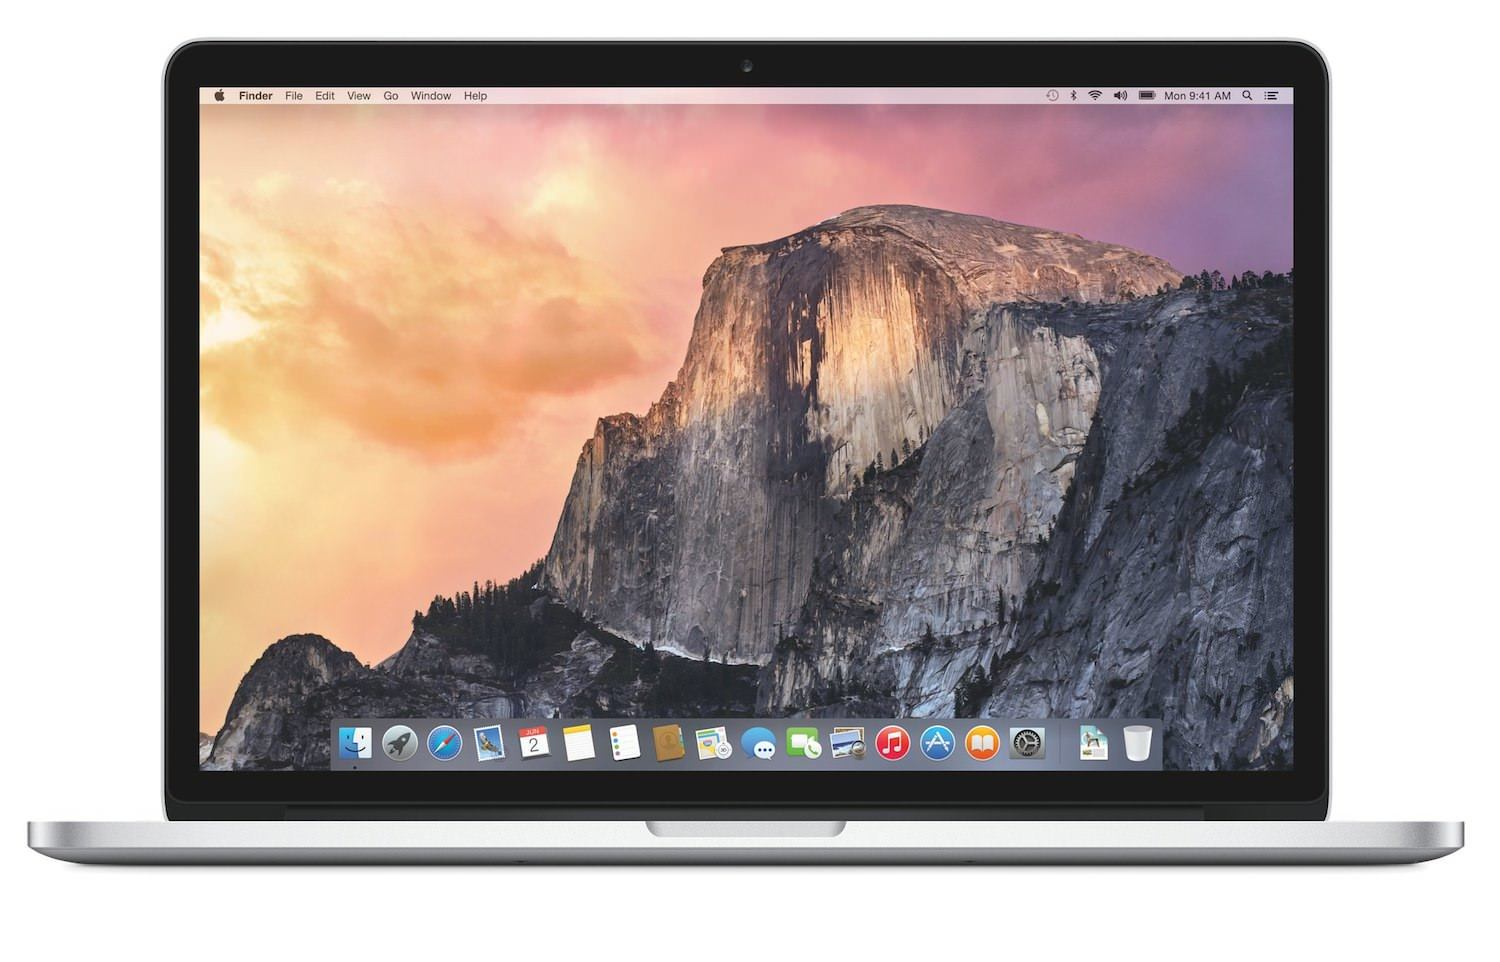 How To Reset Mac's PRAM in OS X 10.10 Yosemite - iHash